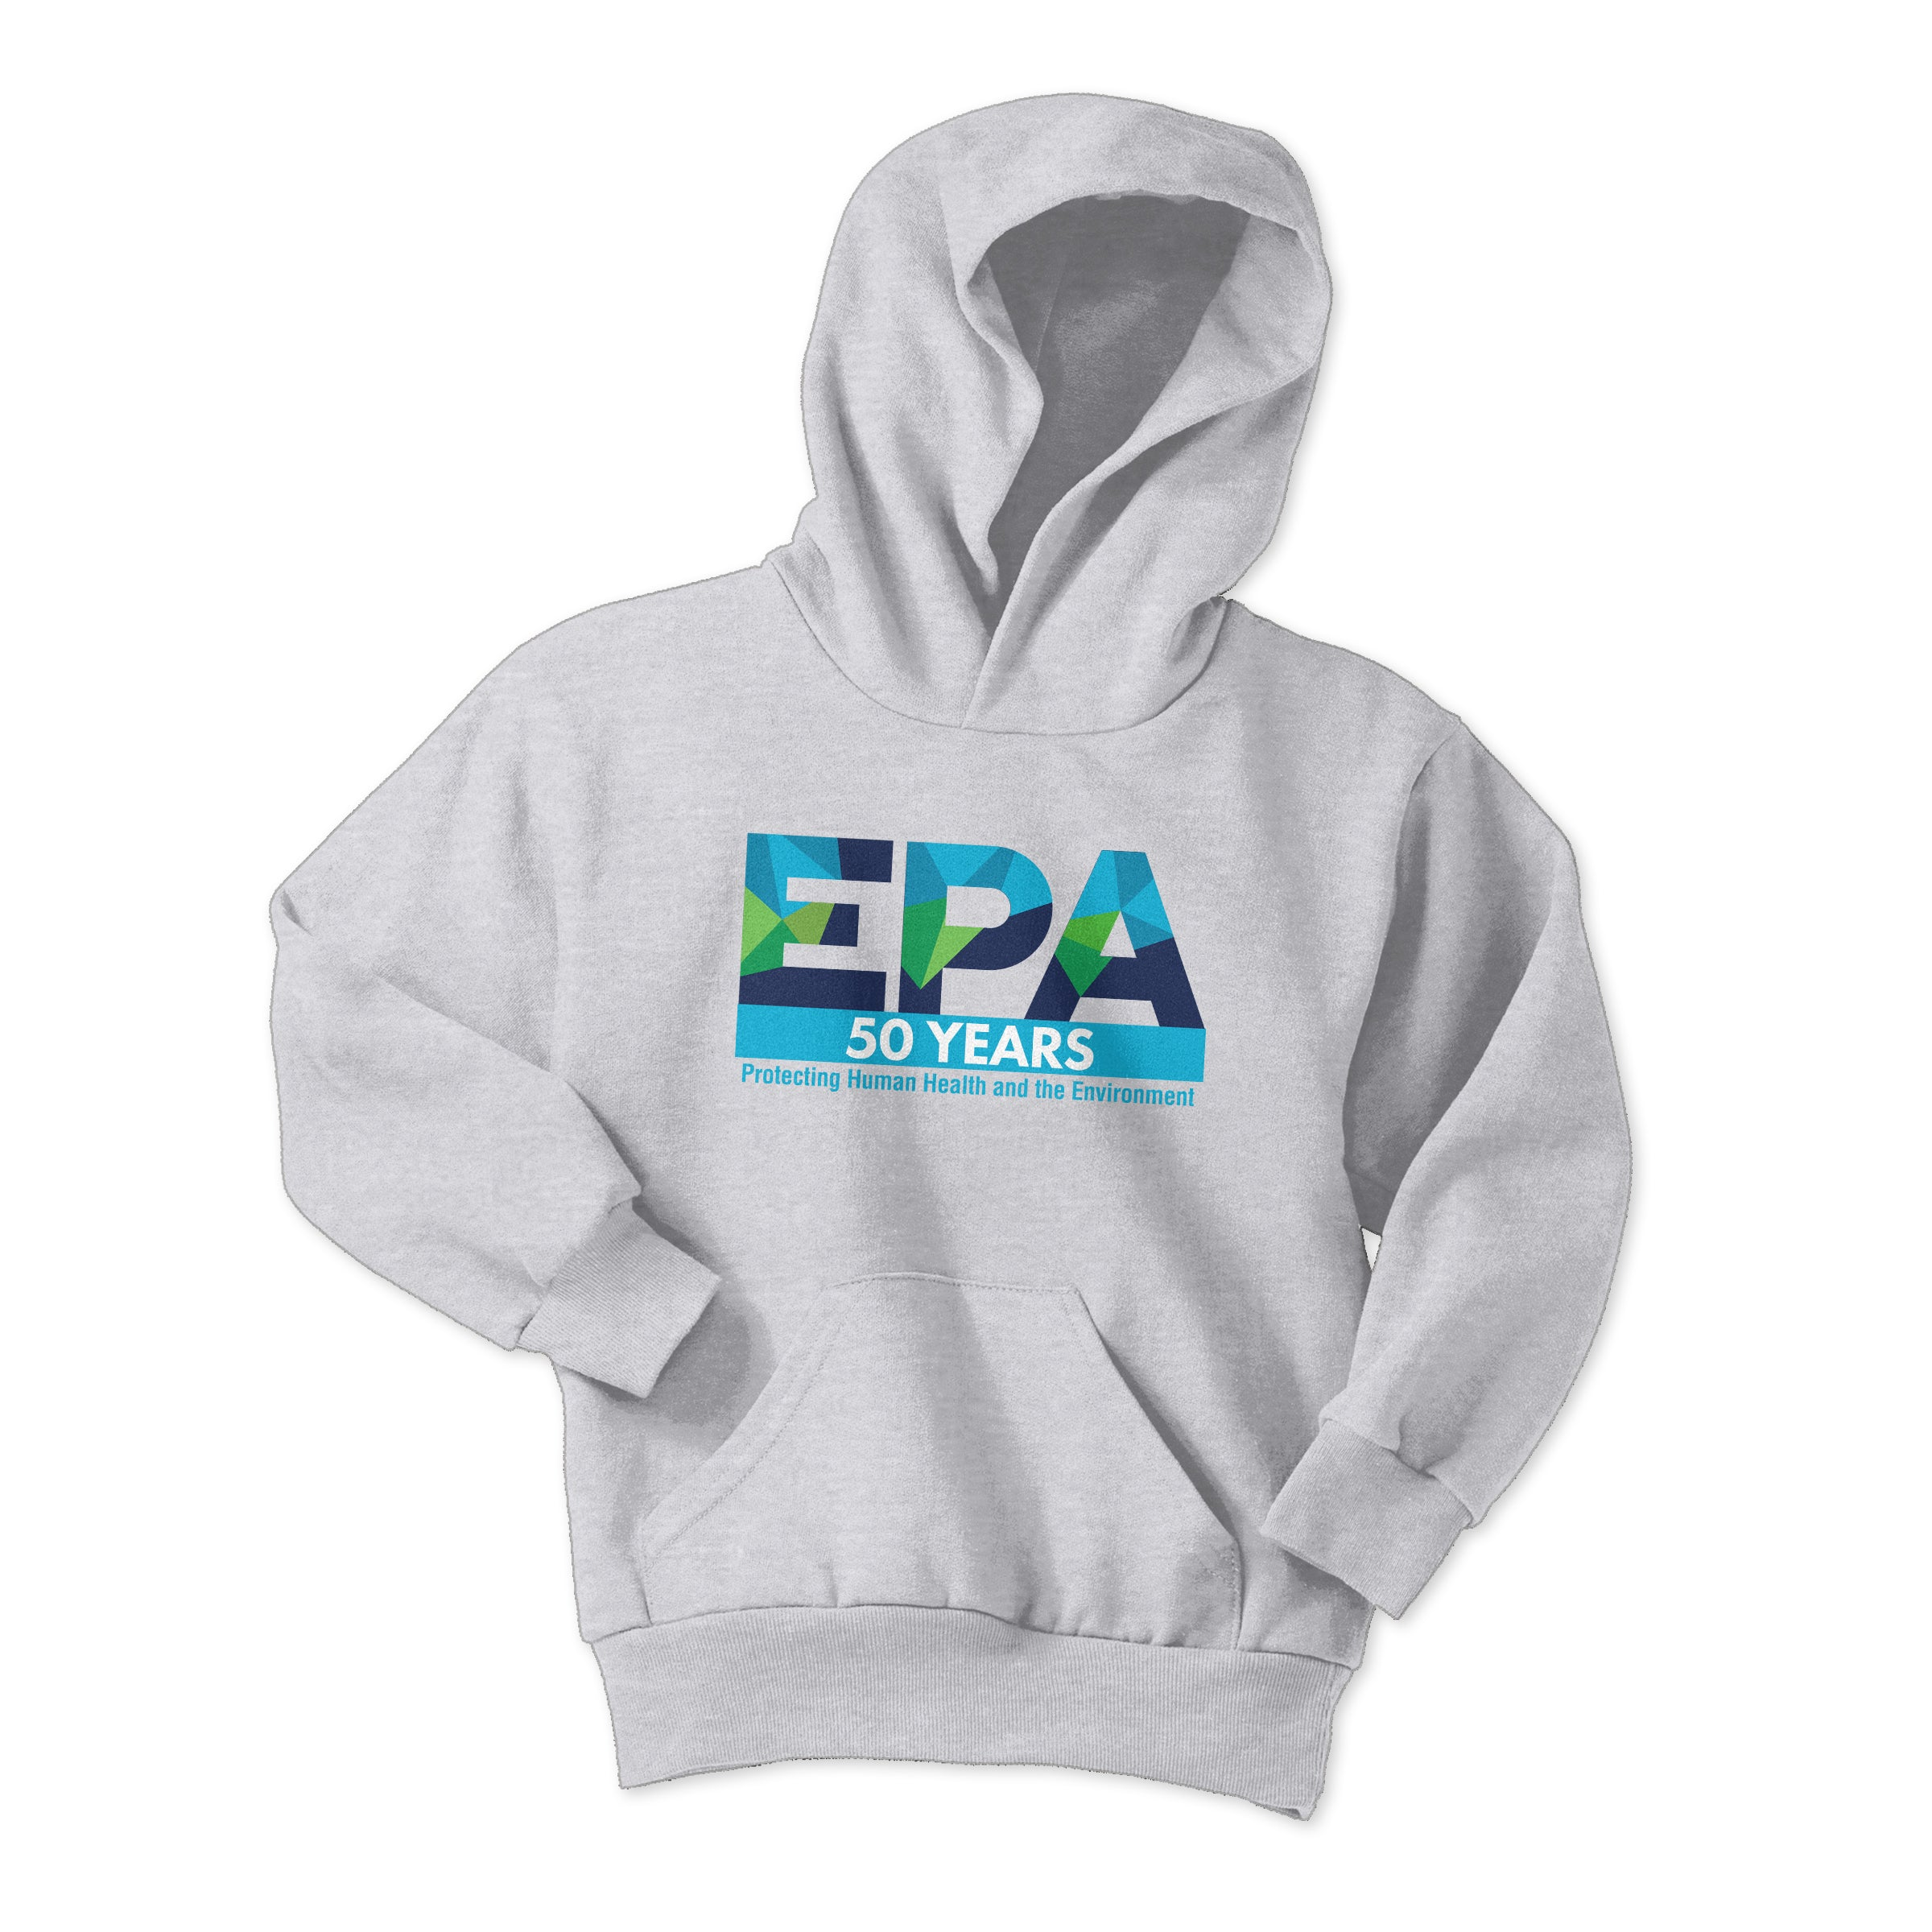 EPA at 50 Youth Hooded Sweatshirt